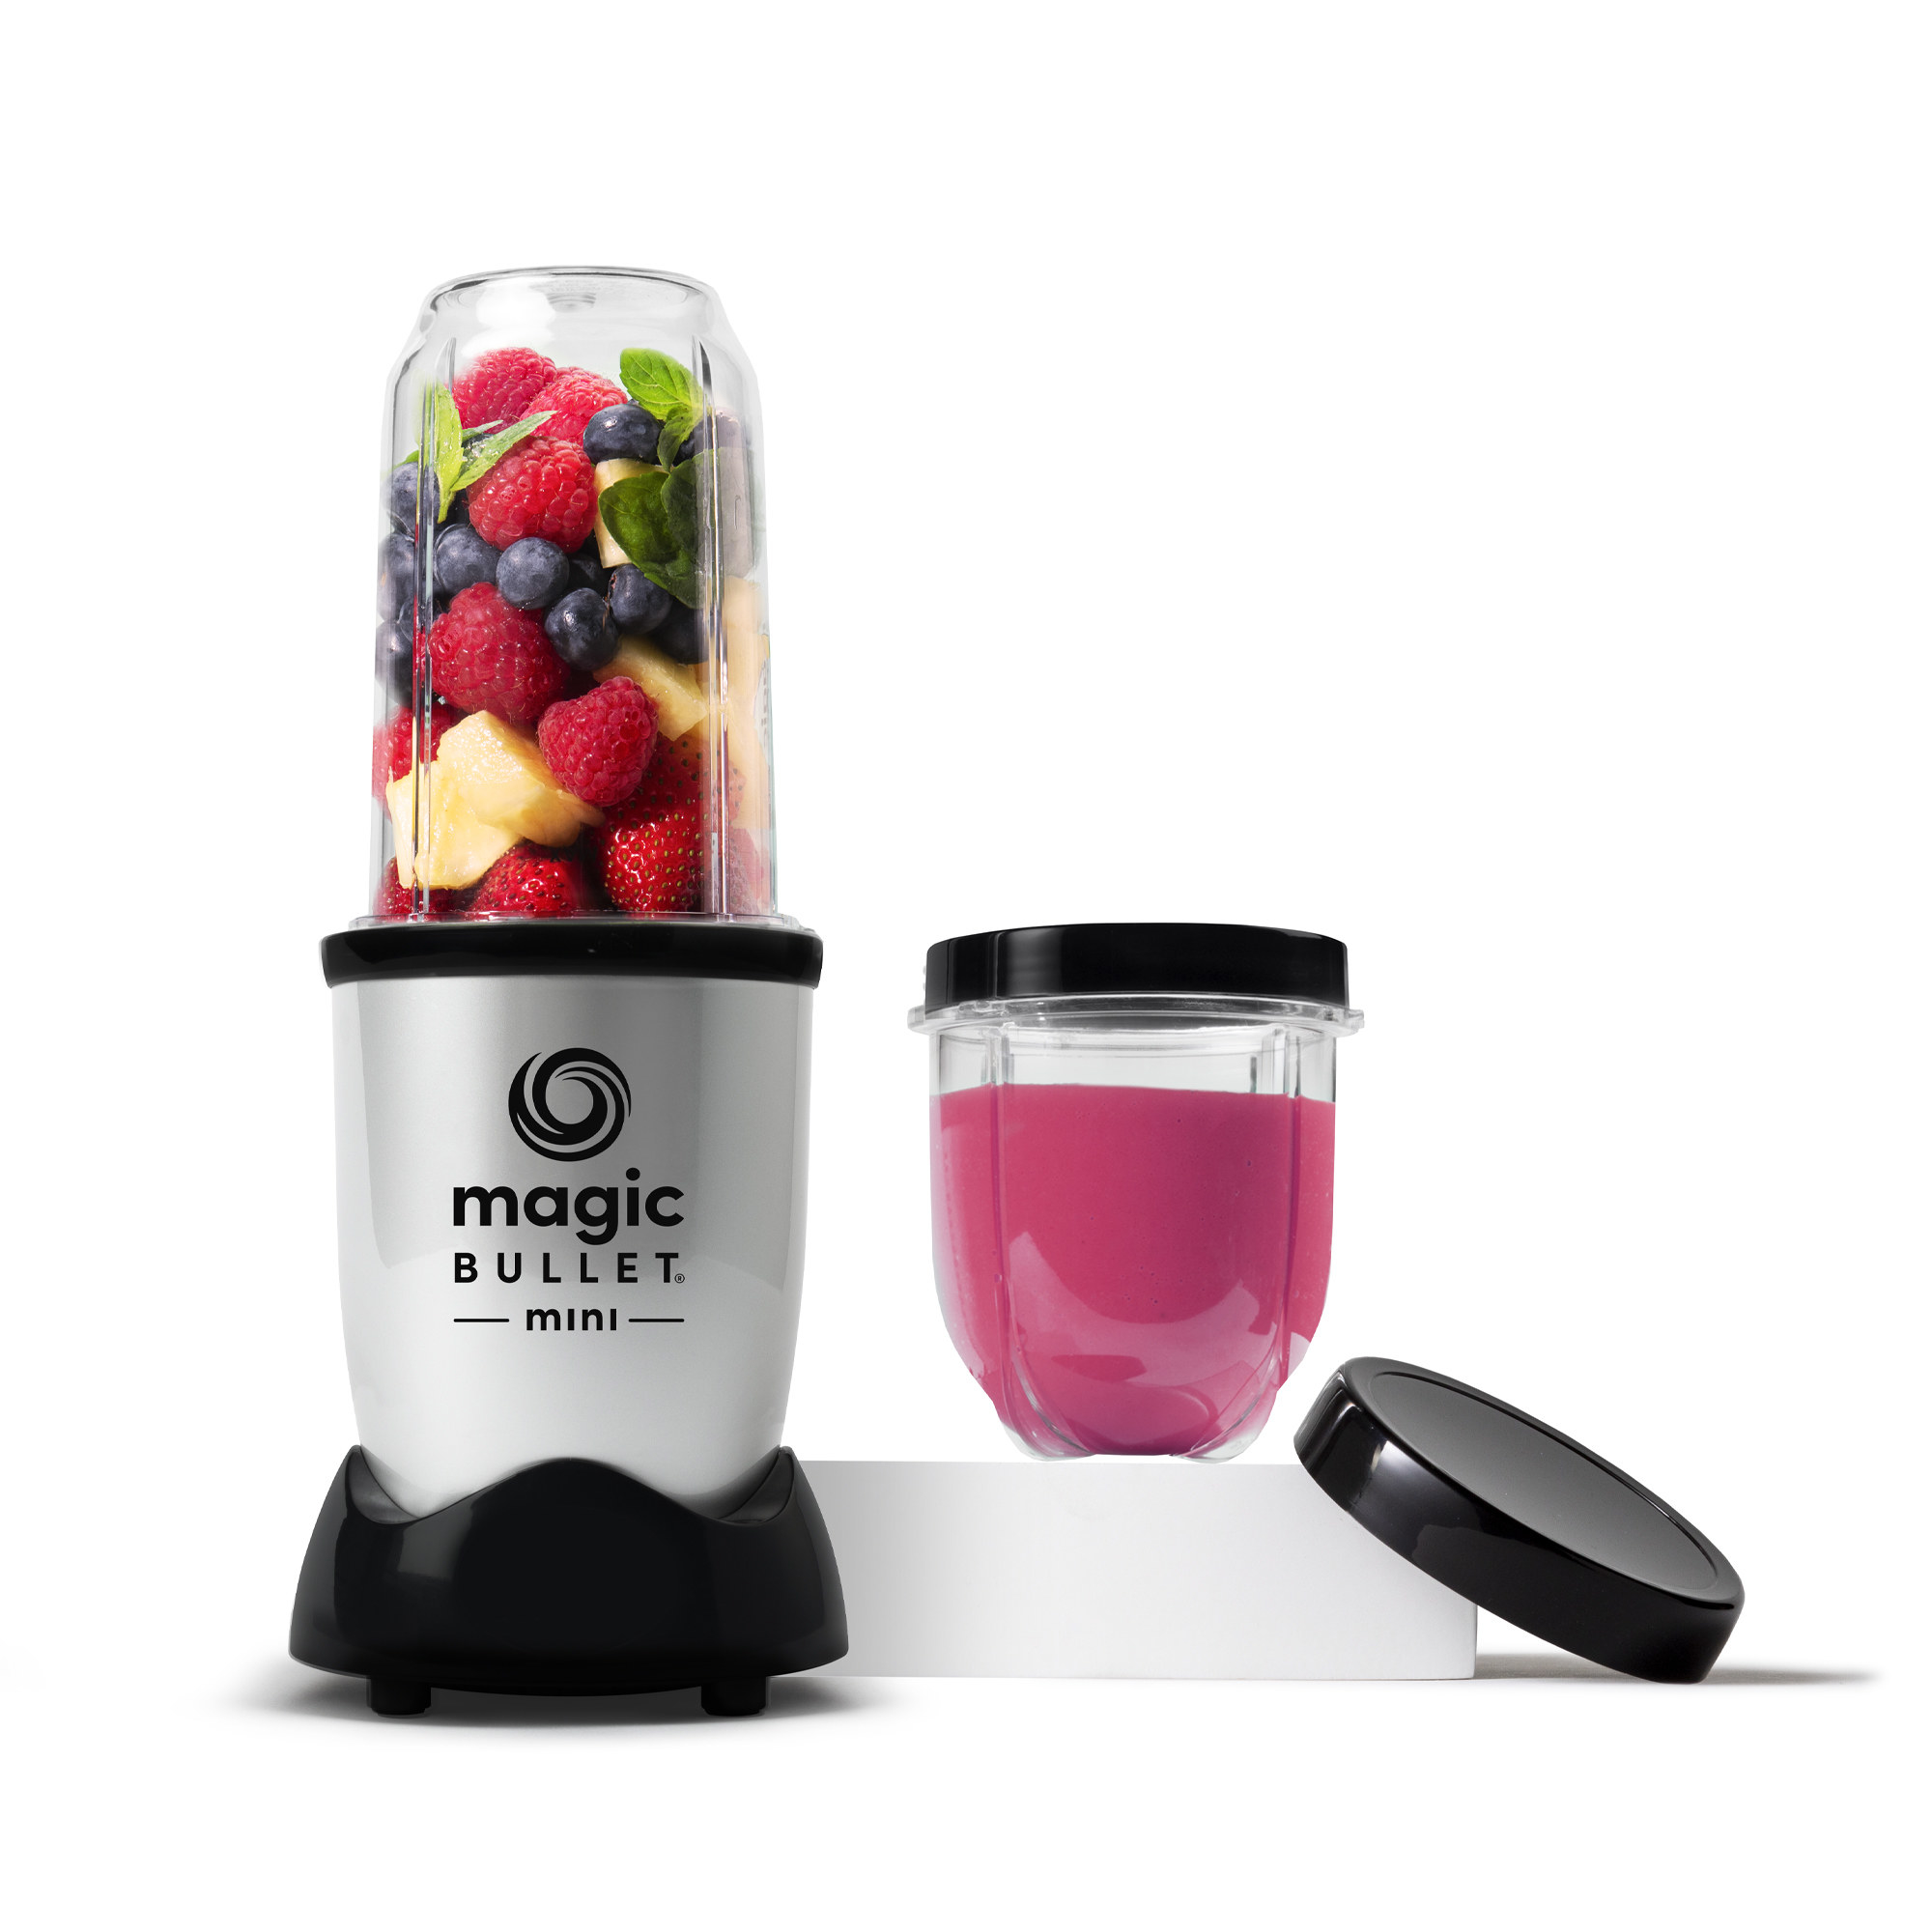 A silver blender with a black base and clear plastic cup filled with fruit next to a smoothie